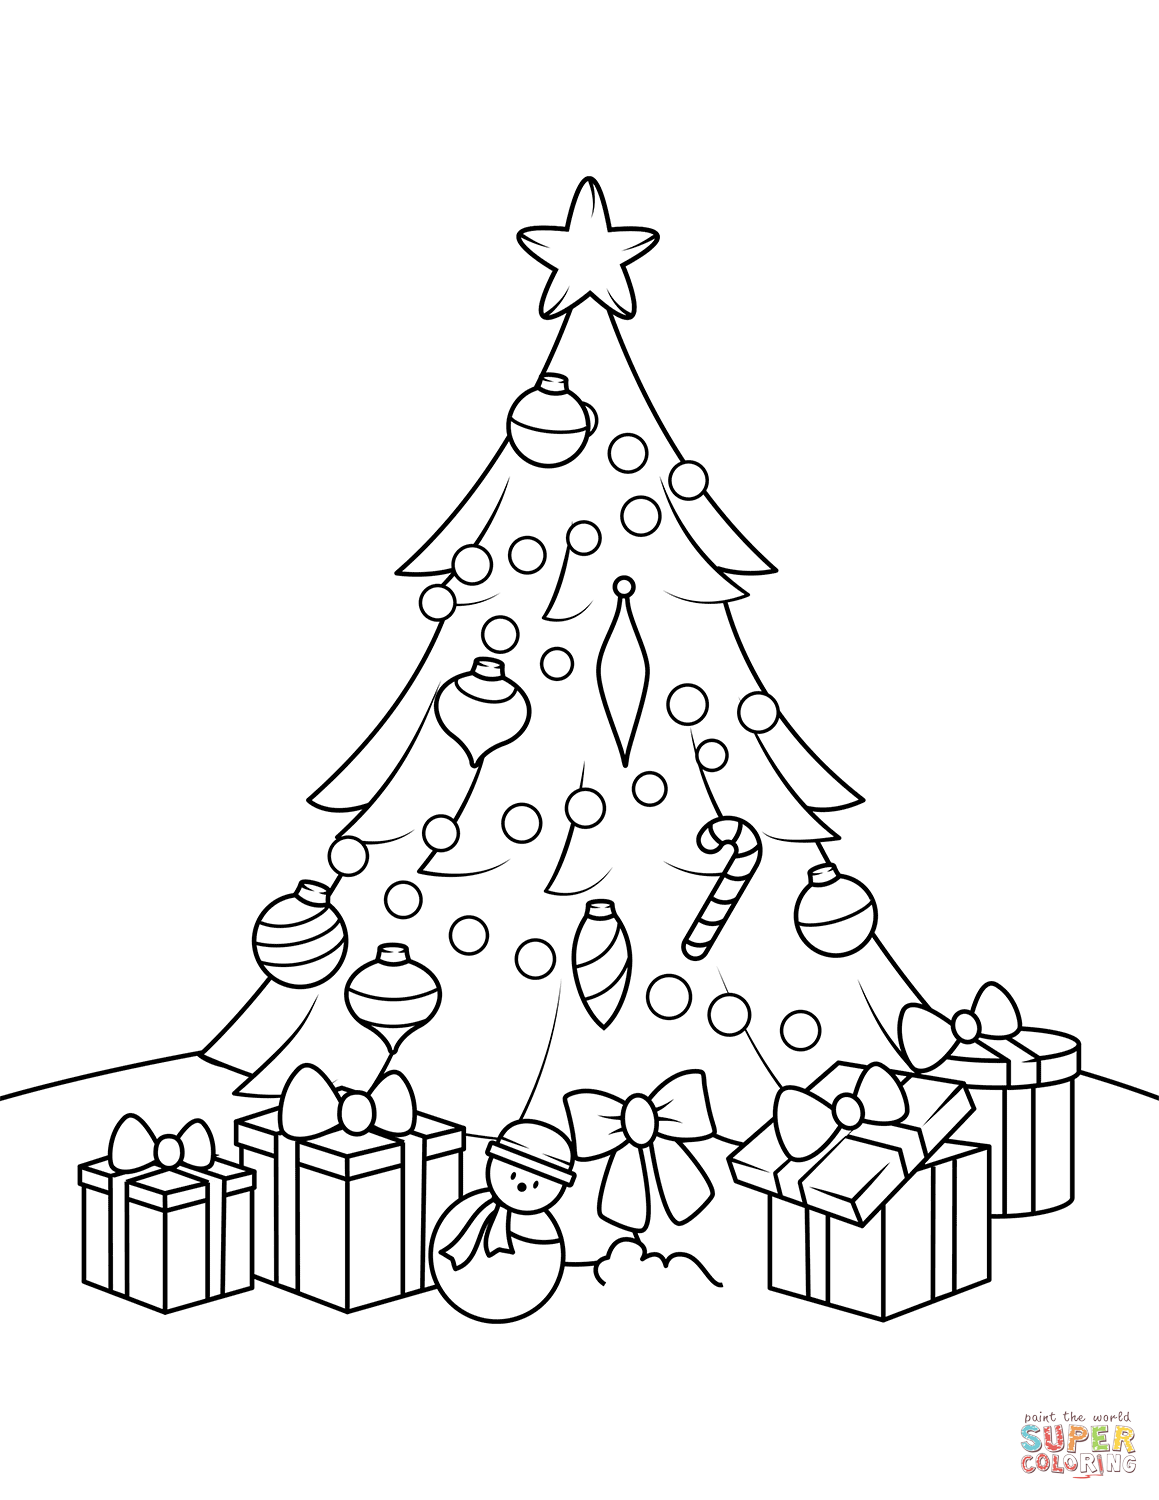 Christmas Tree With Presents Coloring Page From Category Select 27968 Printable Crafts